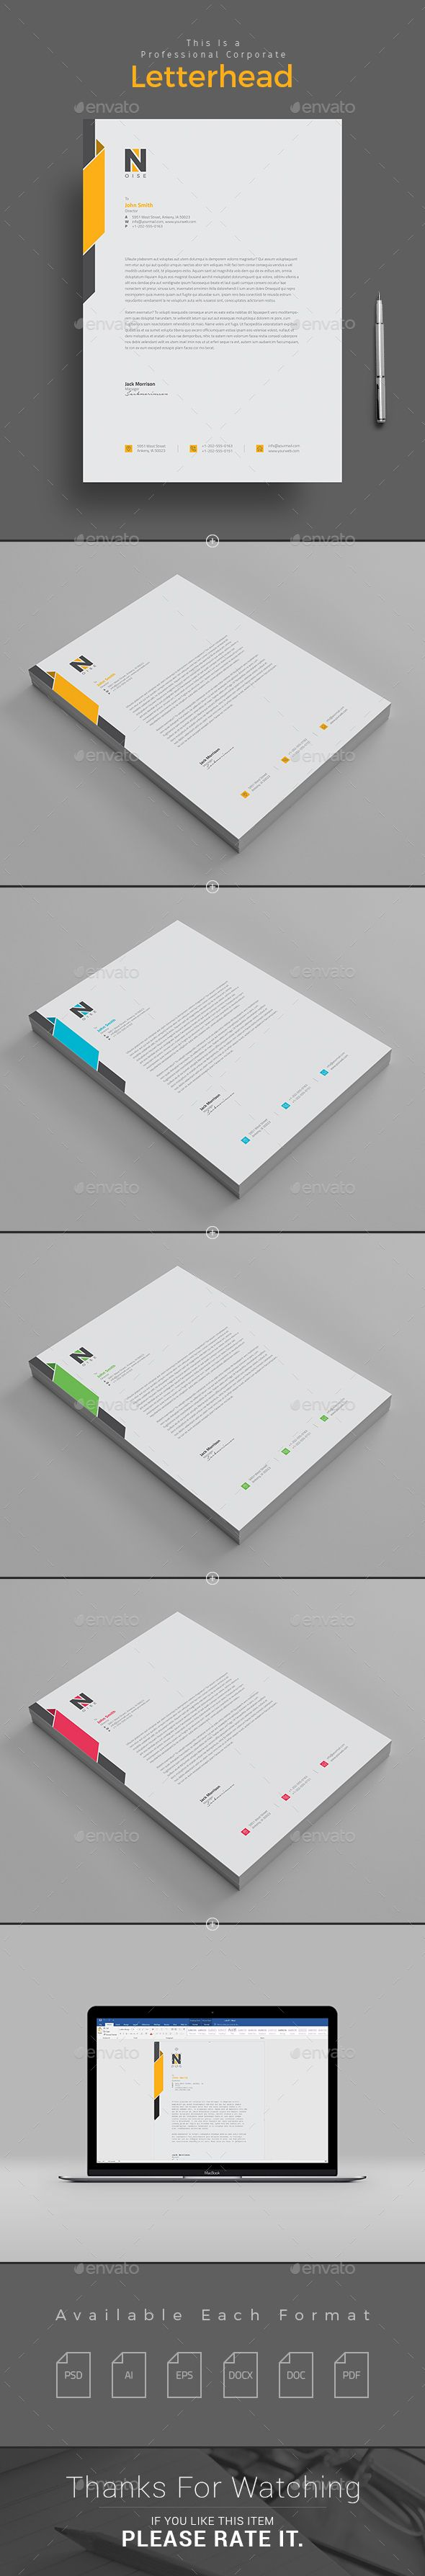 Cool #Letterhead Print Ready Templates for the great impression of your business. http://graphicriver.net/item/letterhead/15485975?ref=themedevisers